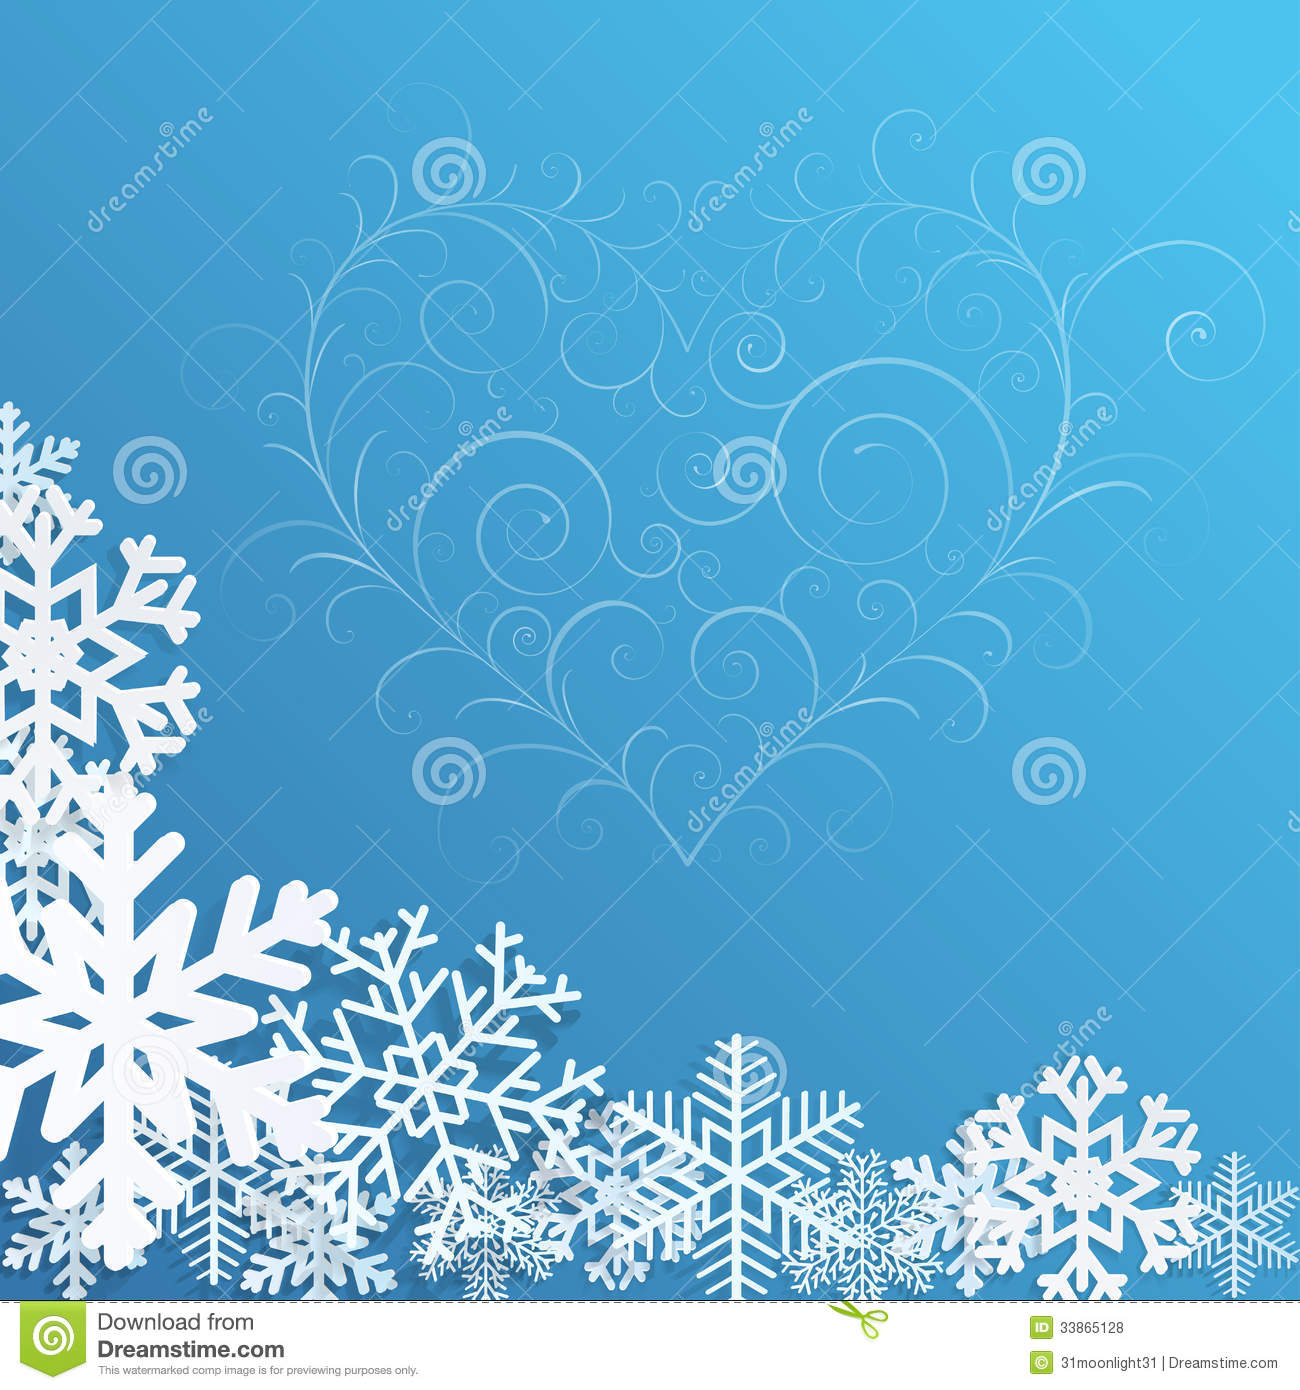 Christmas background with snowflakes and heart royalty